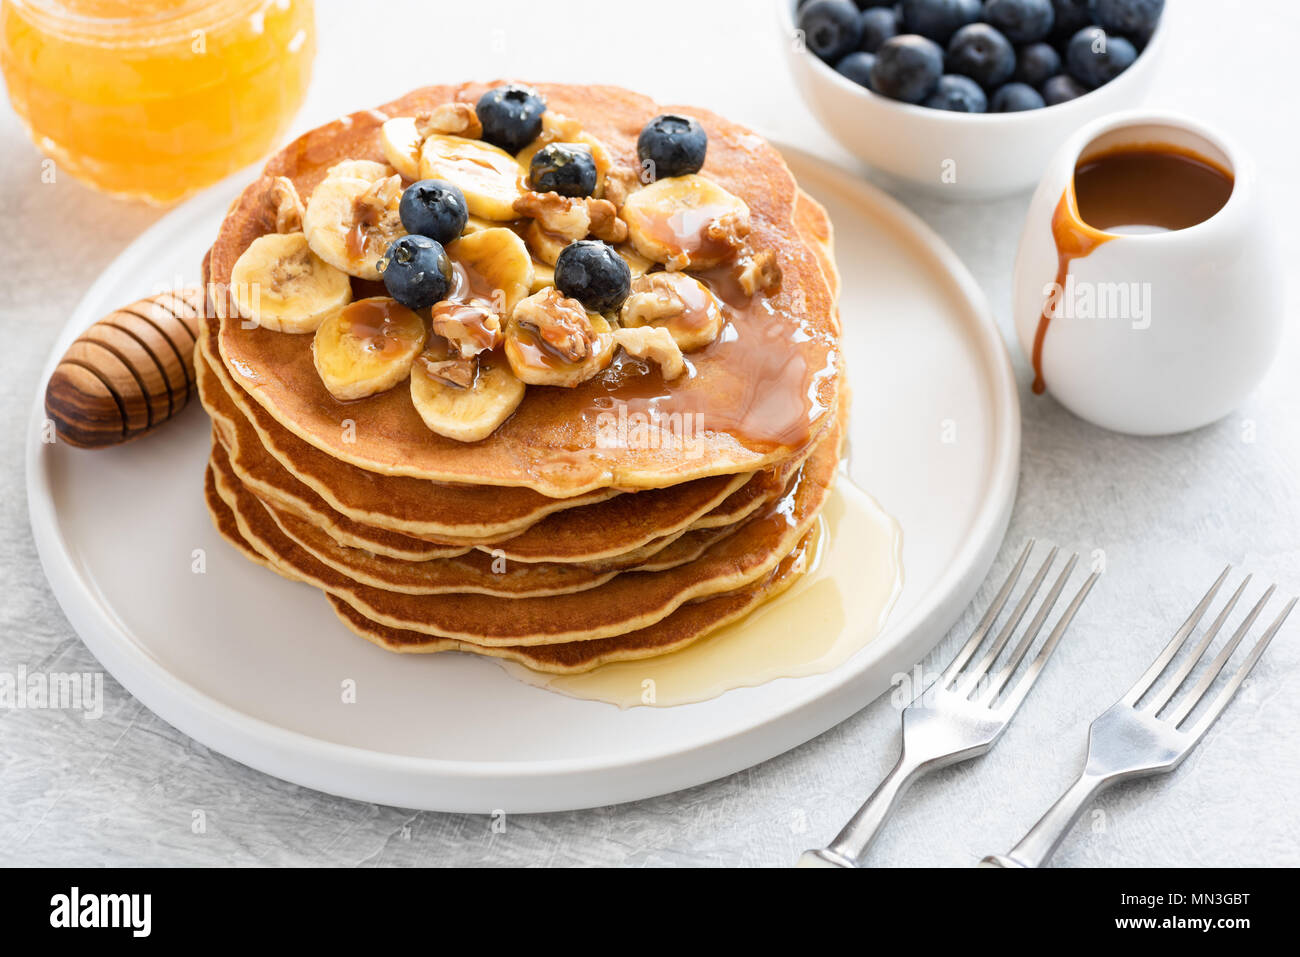 Stack of pancakes with banana, blueberries, walnuts, honey and caramel sauce on white plate. Closeup view. Breakfast pancakes with maple syrup Stock Photo